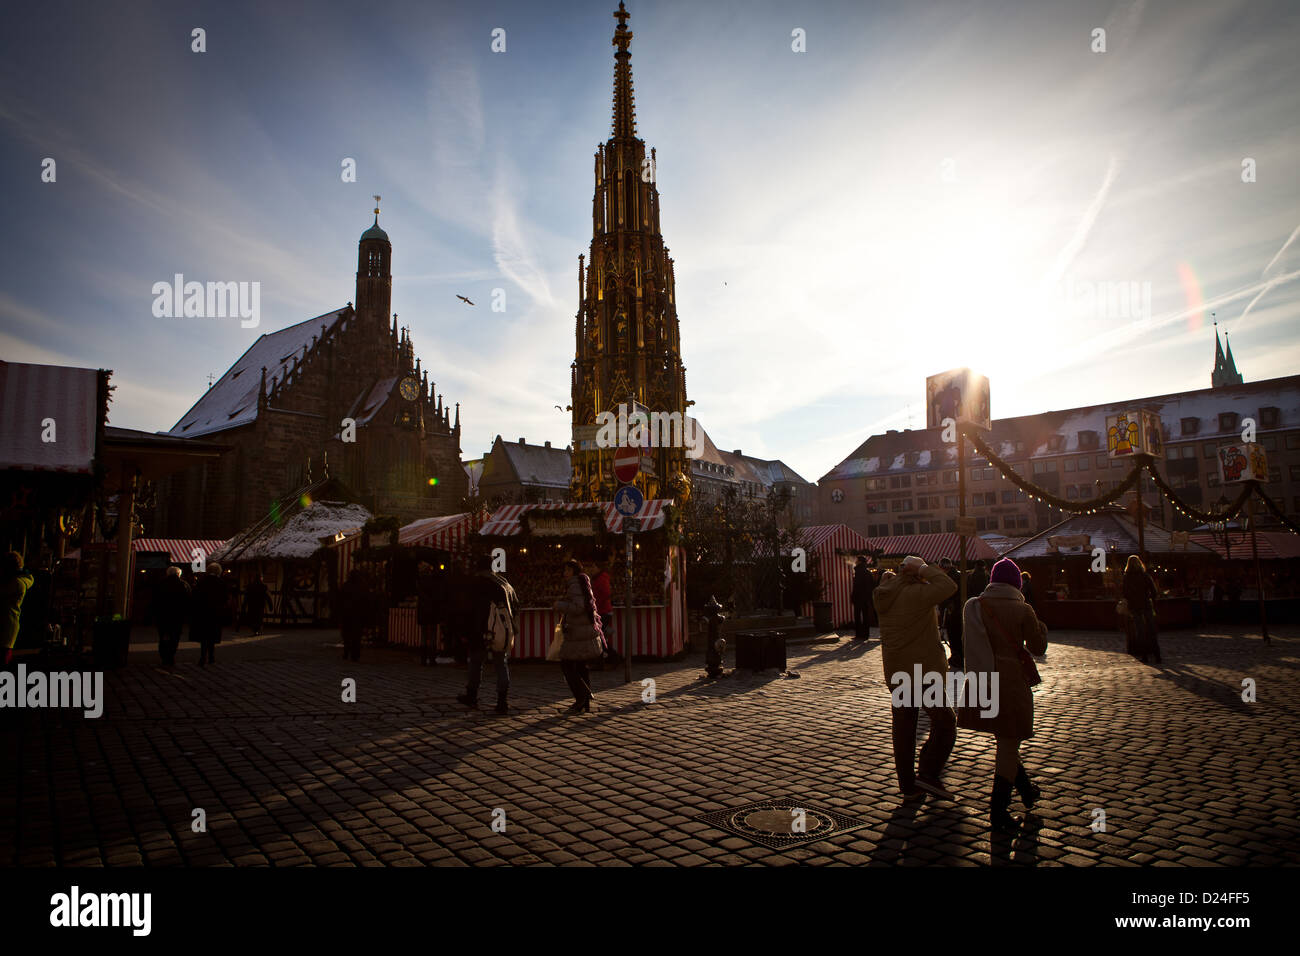 Hauptmarkt Square in the old quarter of Nuremberg during the Christmas Market Stock Photo